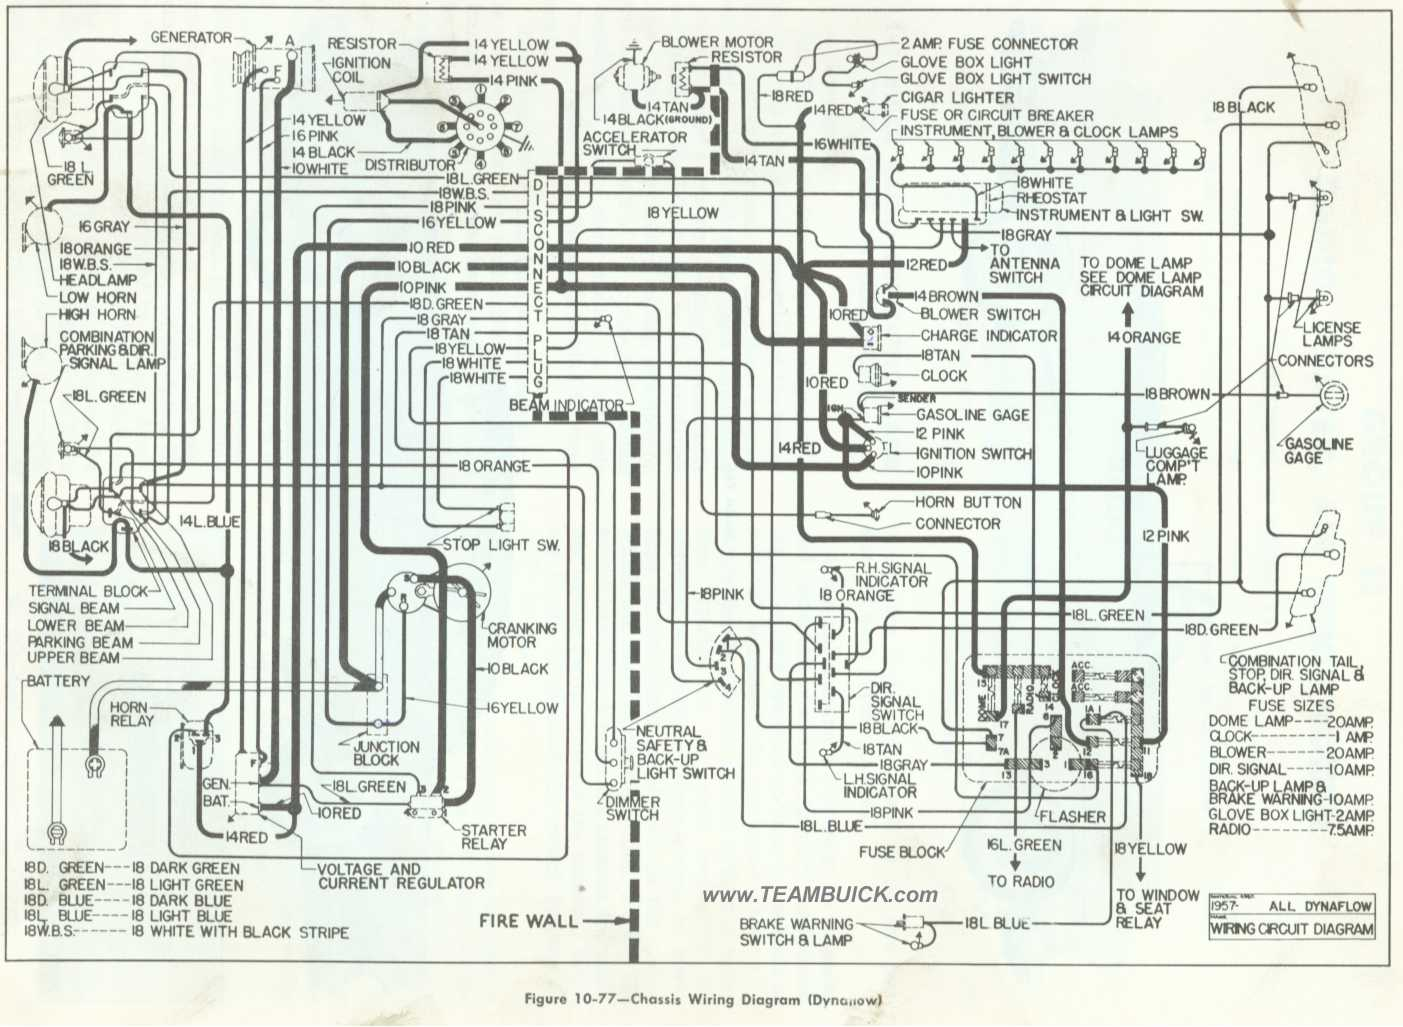 1957 Buick Wiring Diagram Reinvent Your 2000 Diagrams Rh Teambuick Com 1969 1998 Regal Vehicle